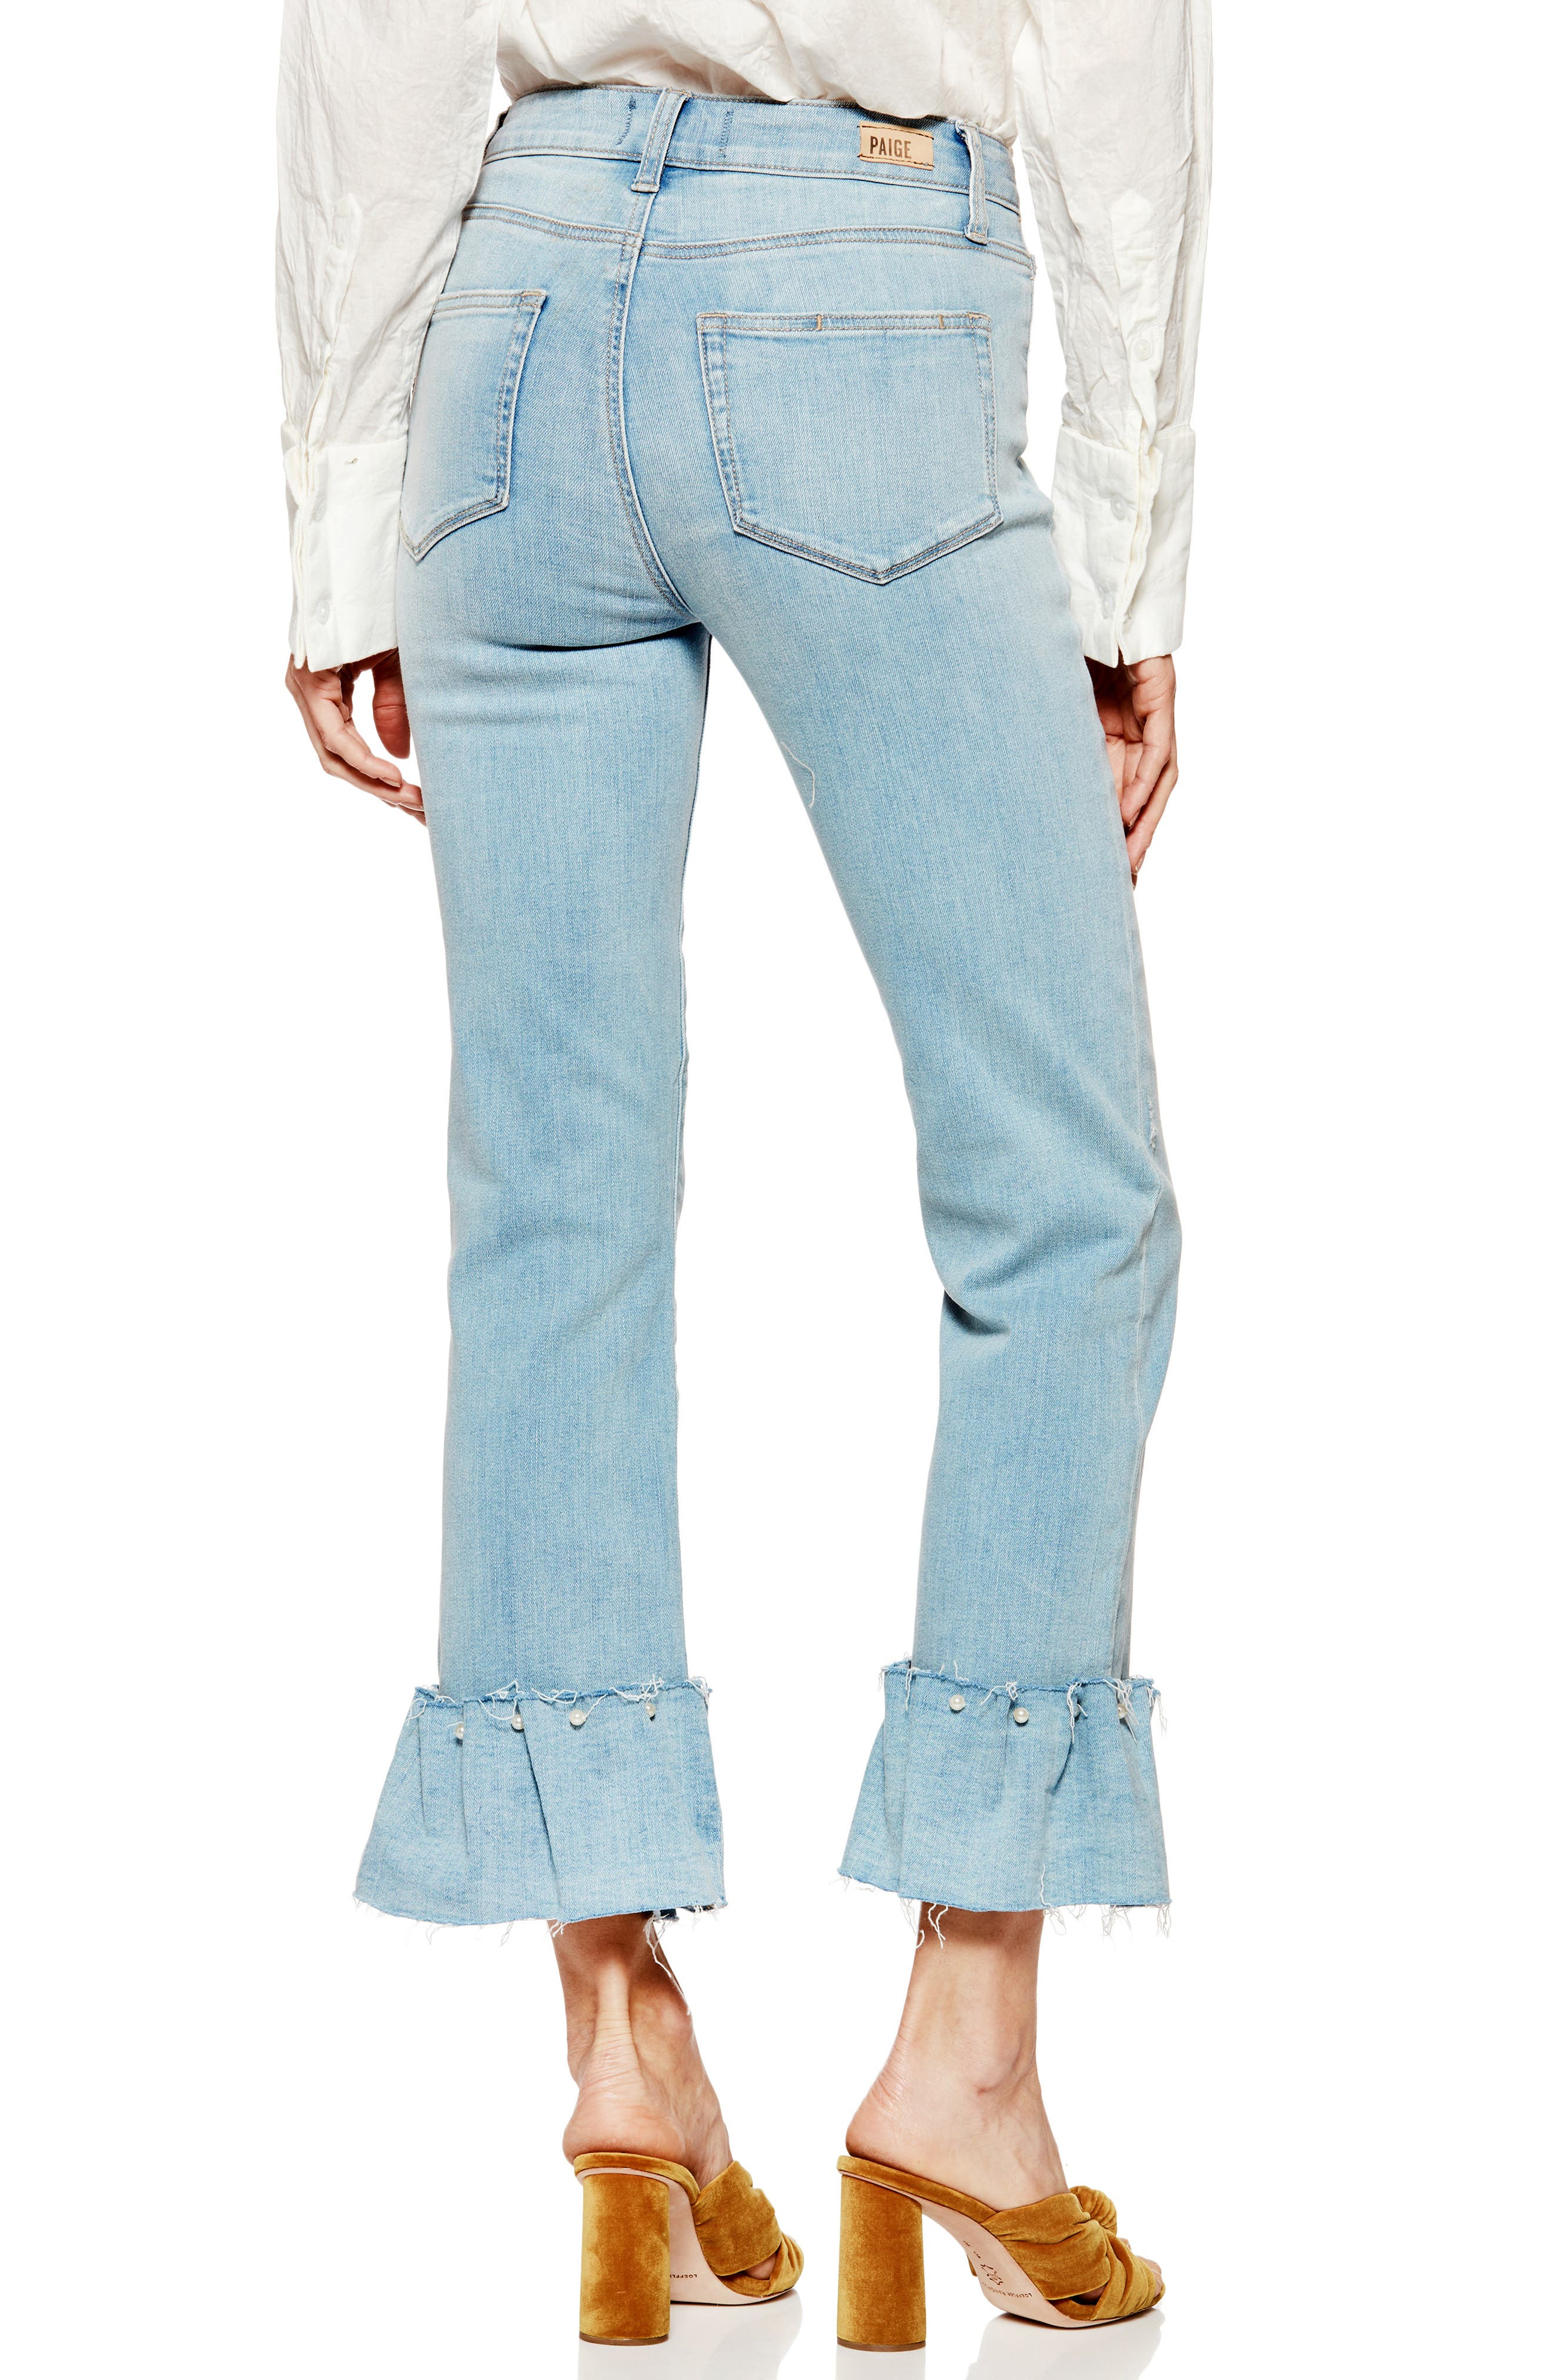 Transcend Vintage - Hoxton Embellished Ruffle High Waist Jeans,                             Alternate thumbnail 2, color,                             PALMS